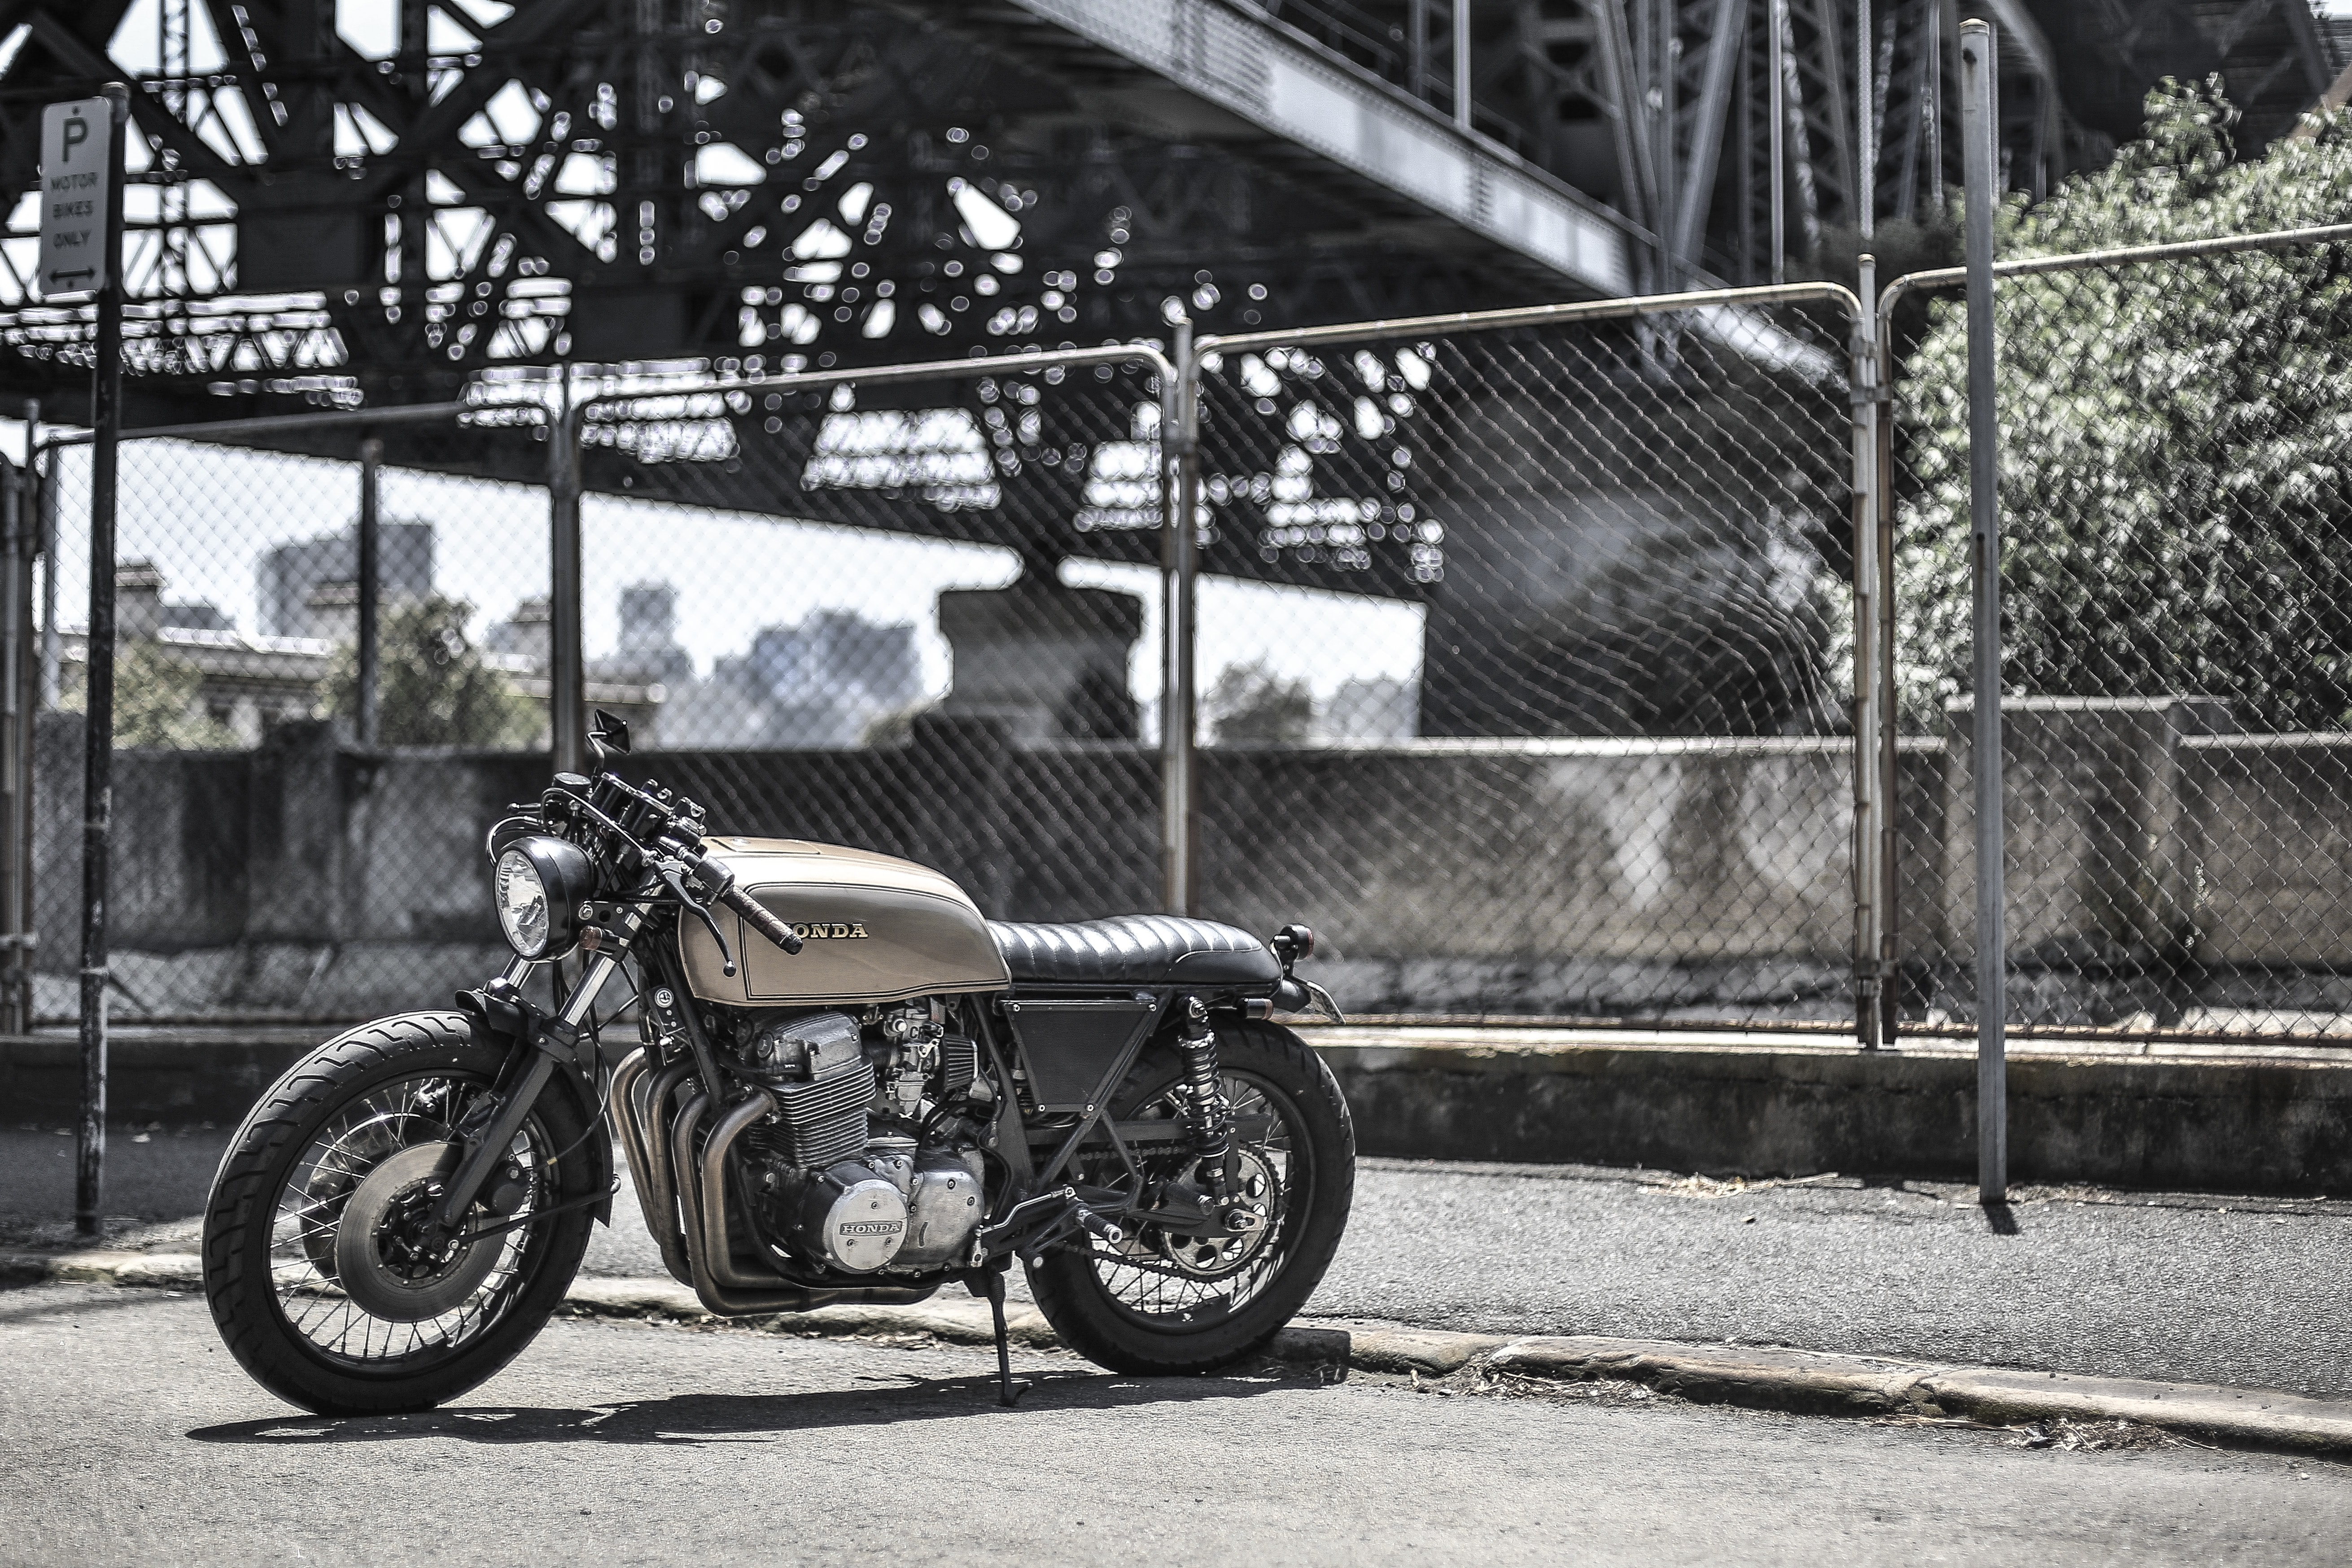 White and black motorcycle parked under an industrial bridge in front of a chain link fence